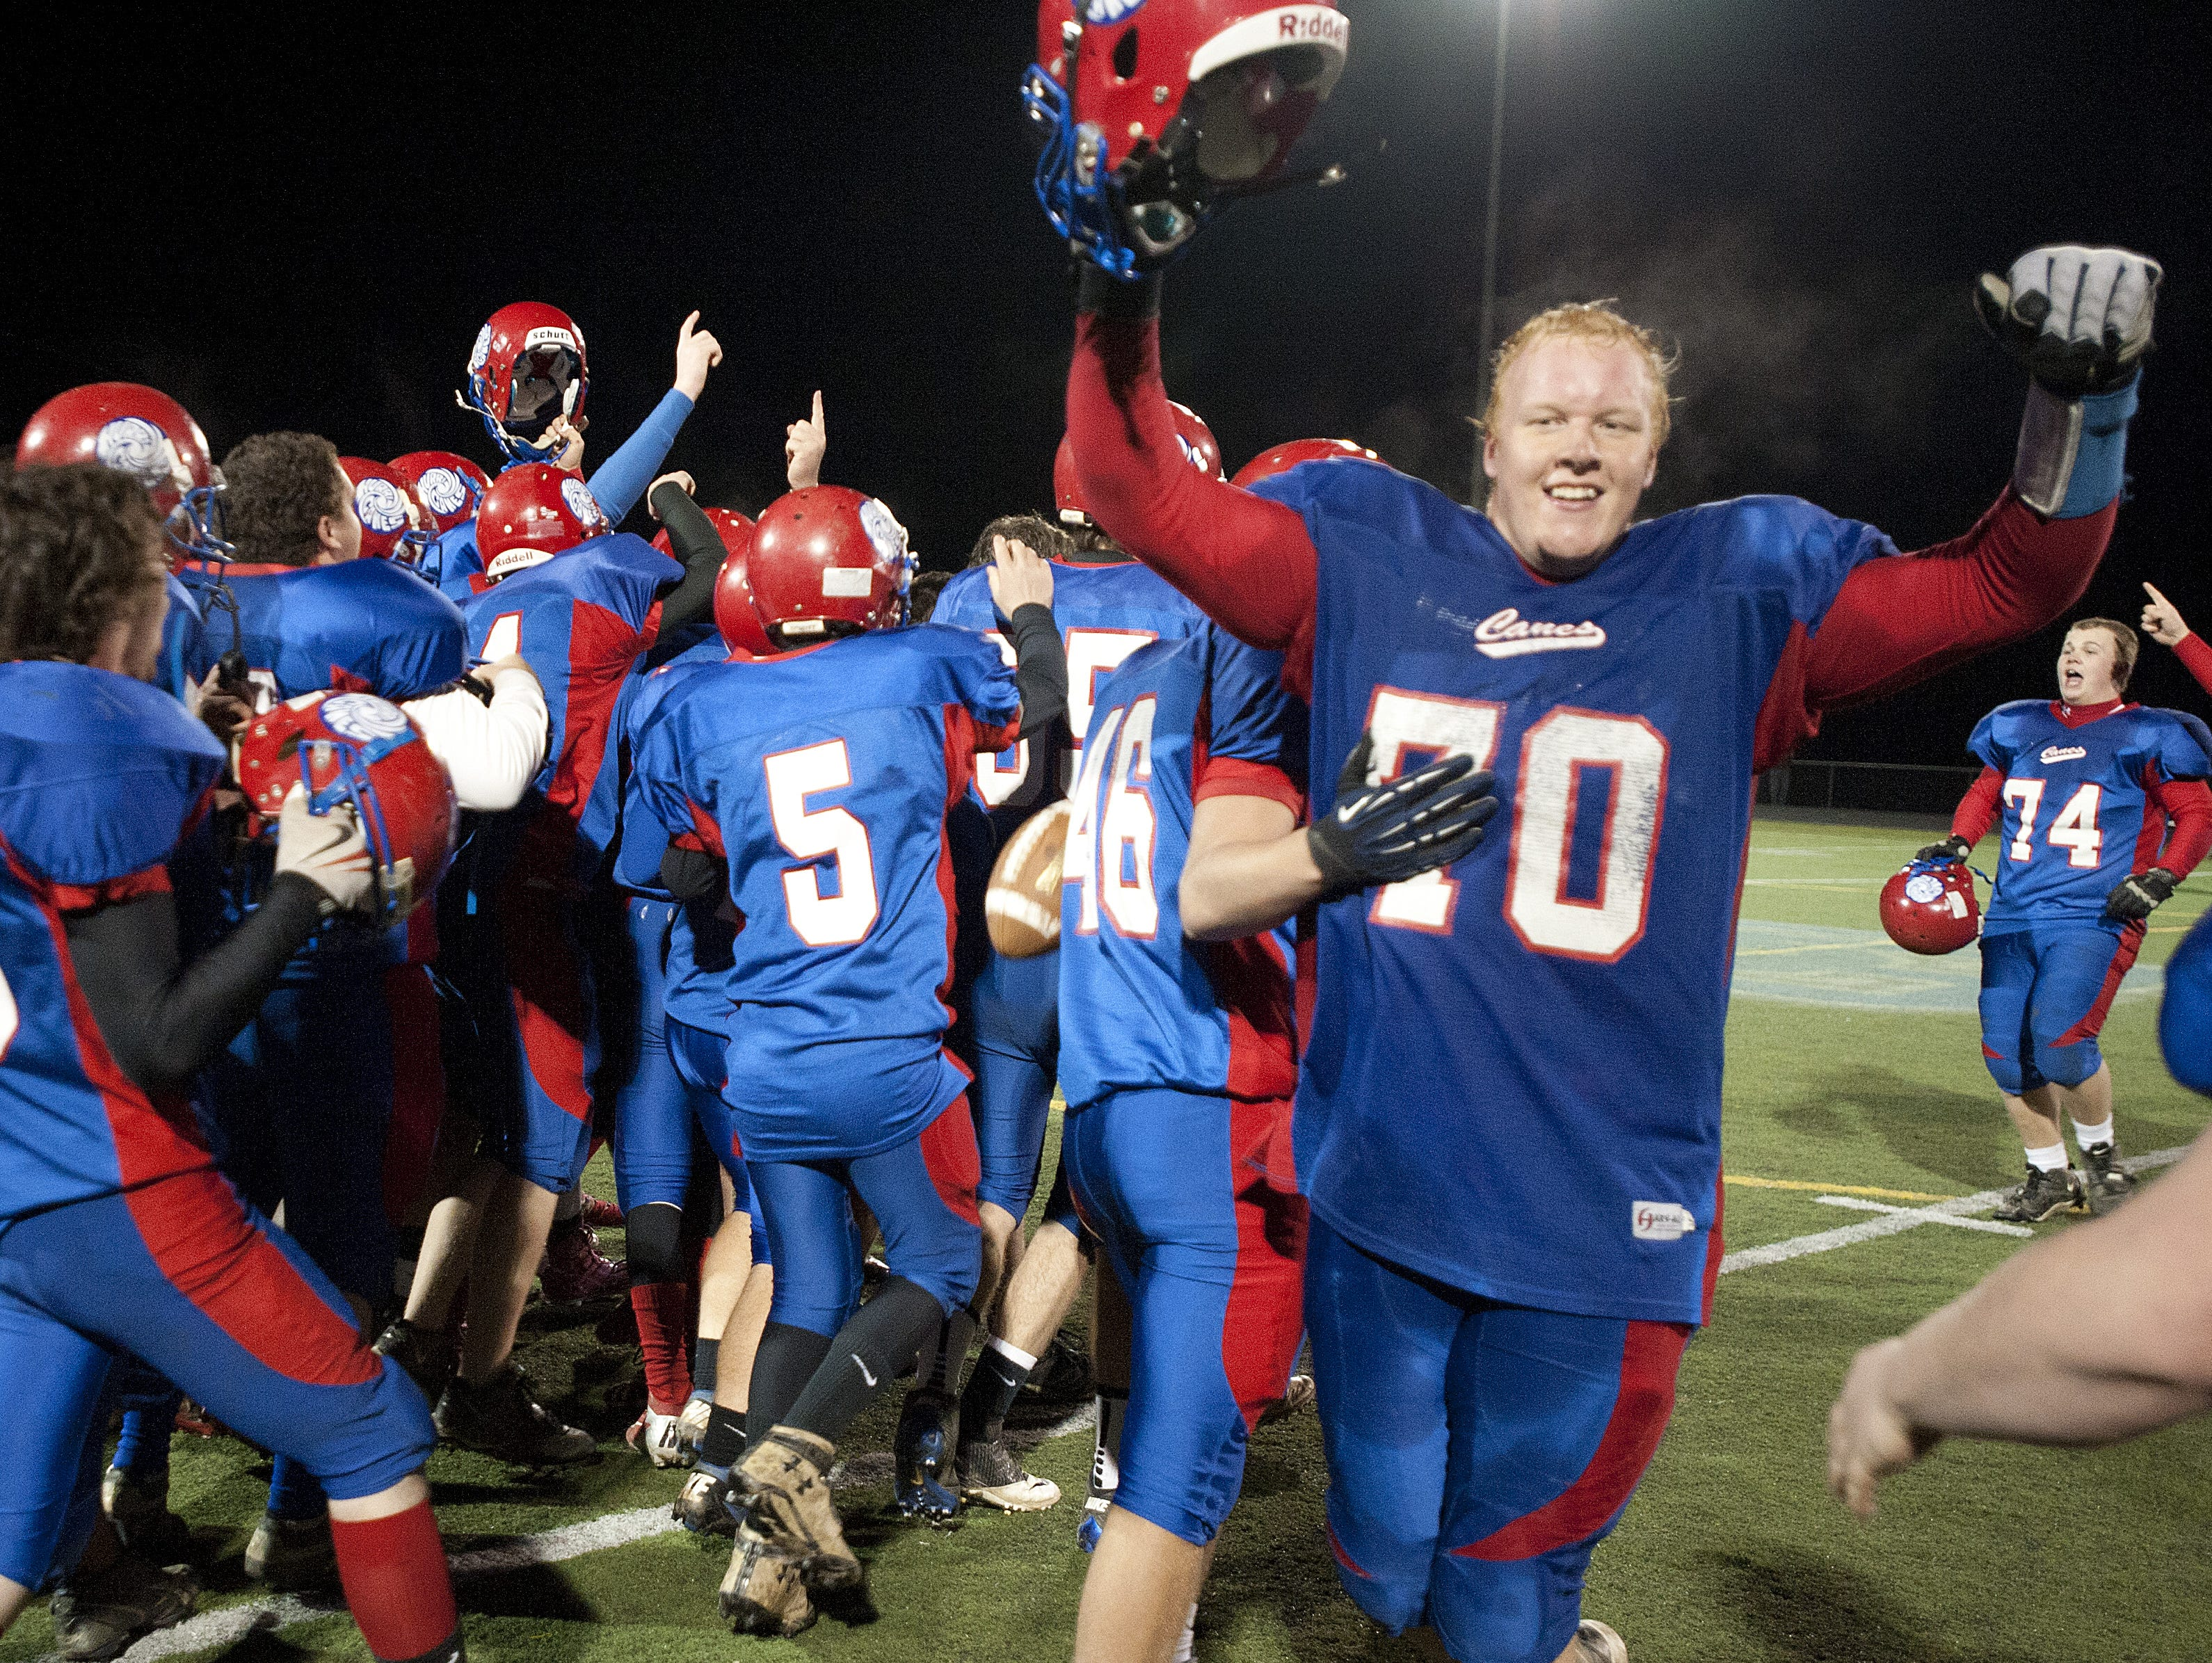 Hartford celebrates its 35-27 win over BFA-St. Albans at the Division I high school football championship game in 2012.